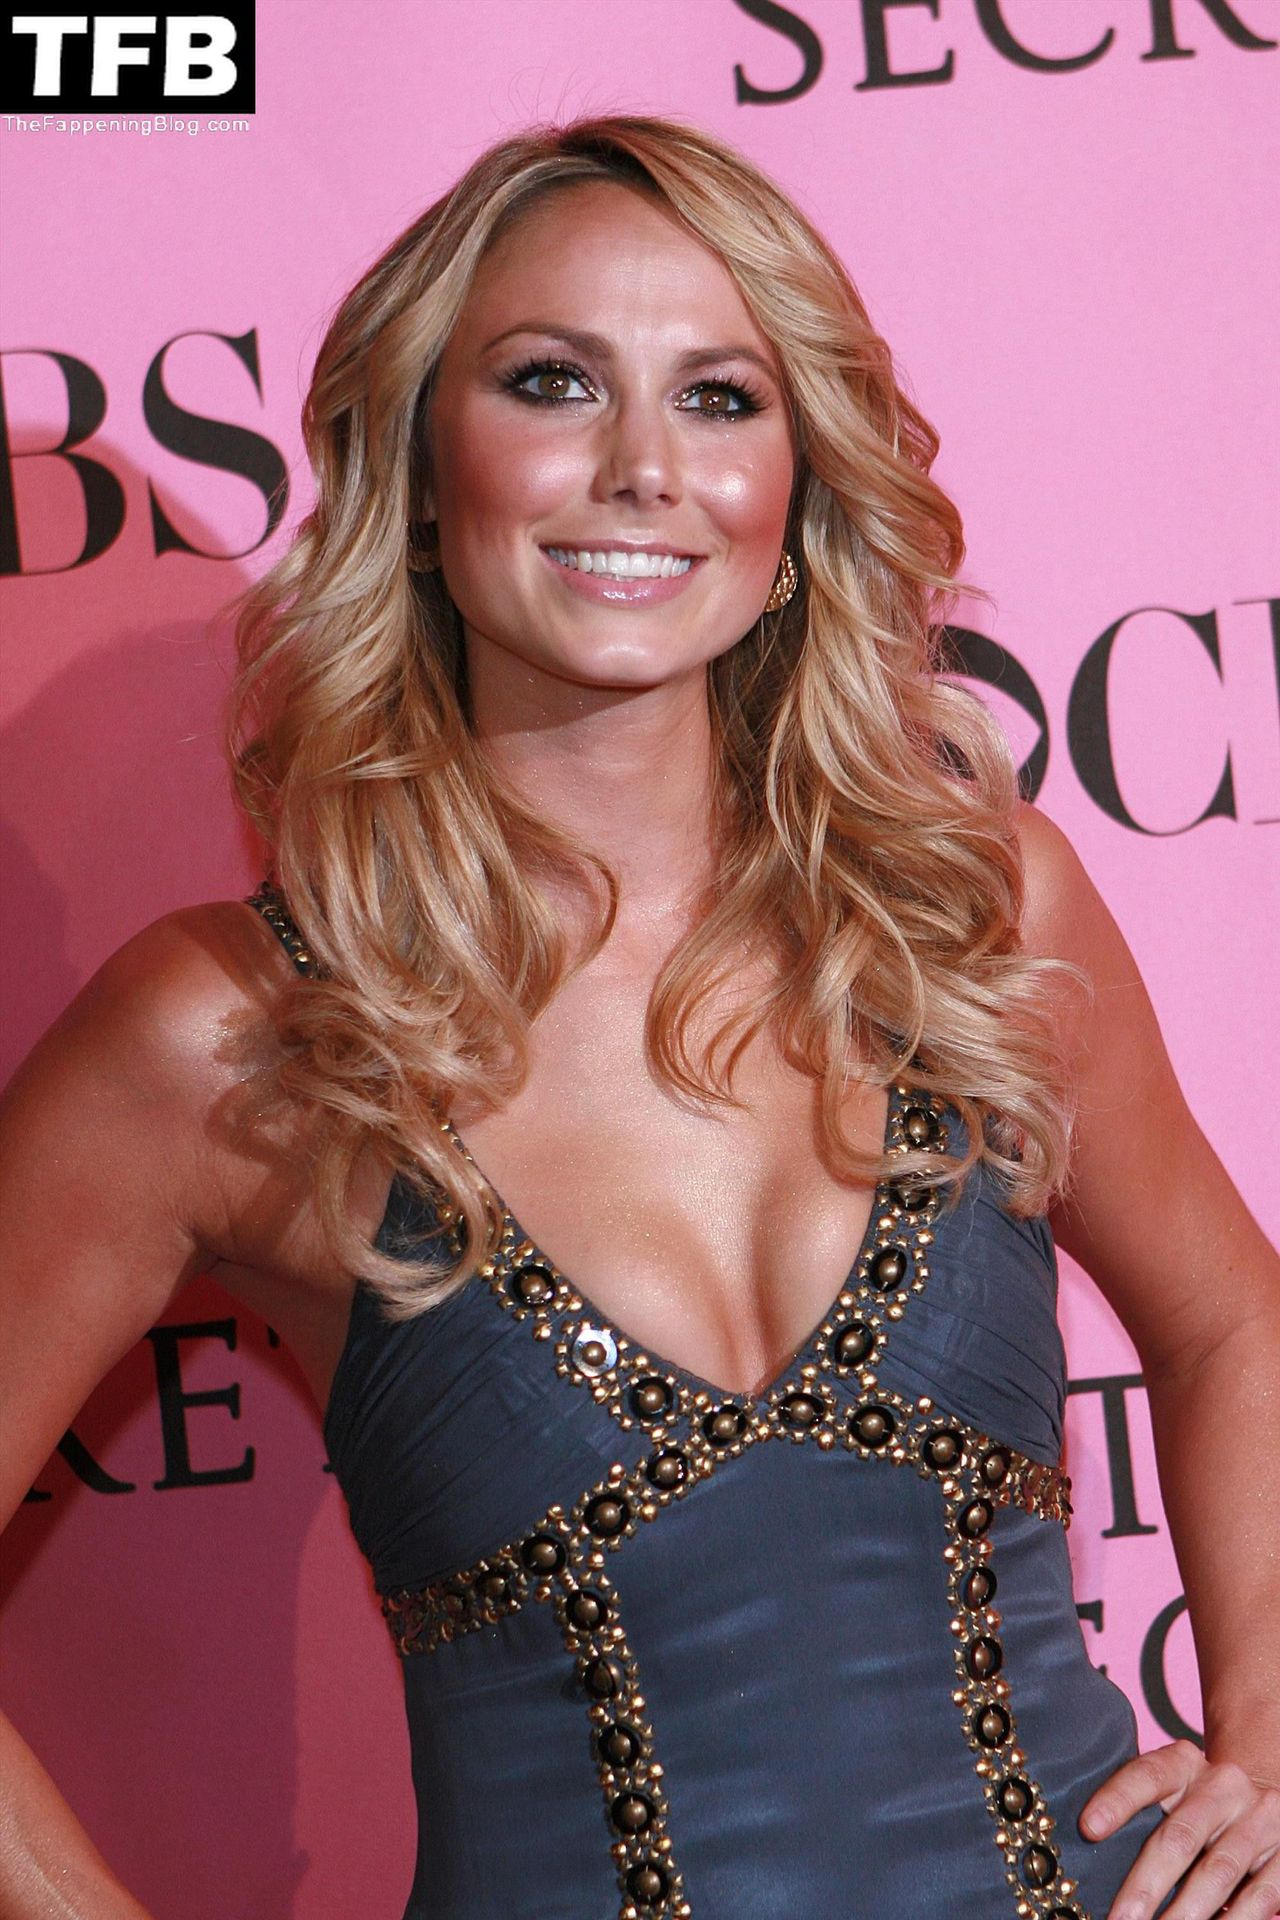 stacy-keibler-cleavage-601611-thefappeningblog.com_.jpg